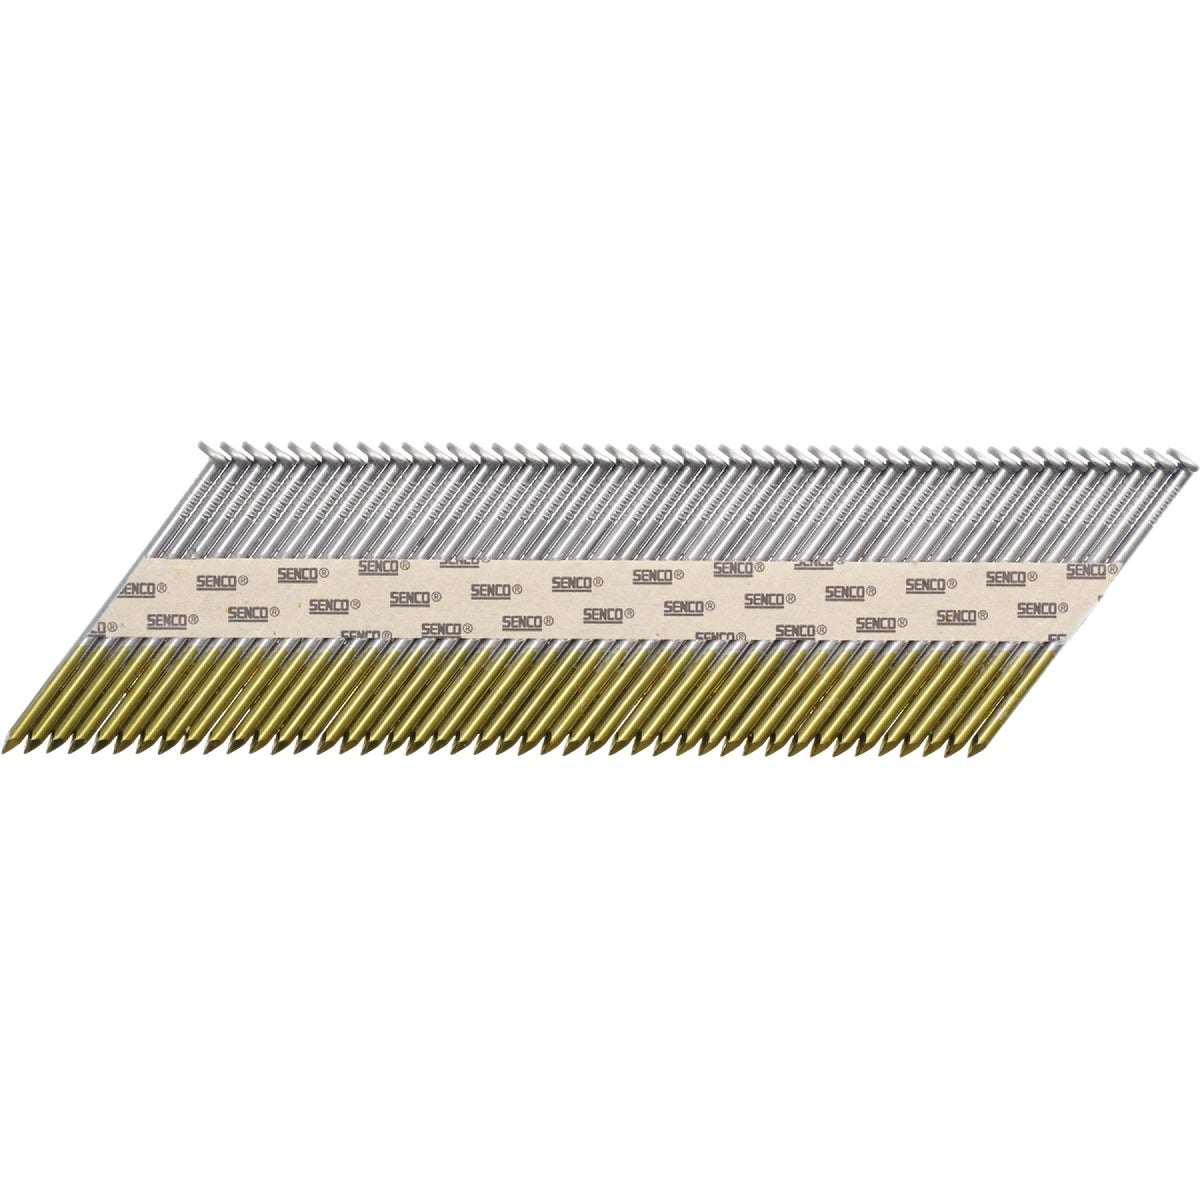 "2-3/8"" FRAMING NAIL - GC24APBX by Senco Brands"